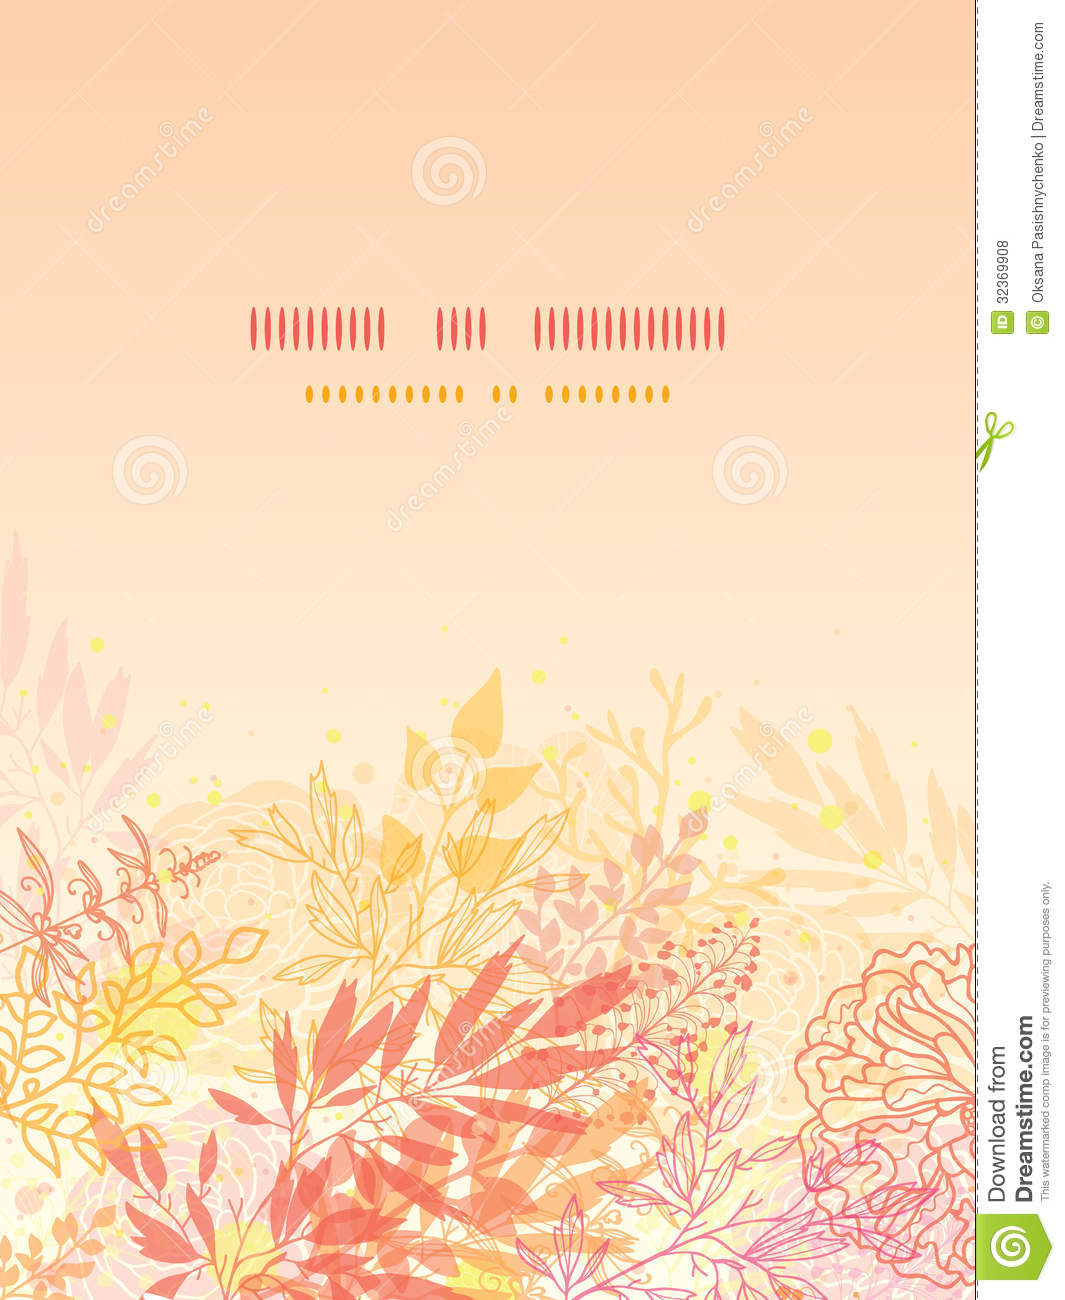 glowing fall plants vertical card background stock vector